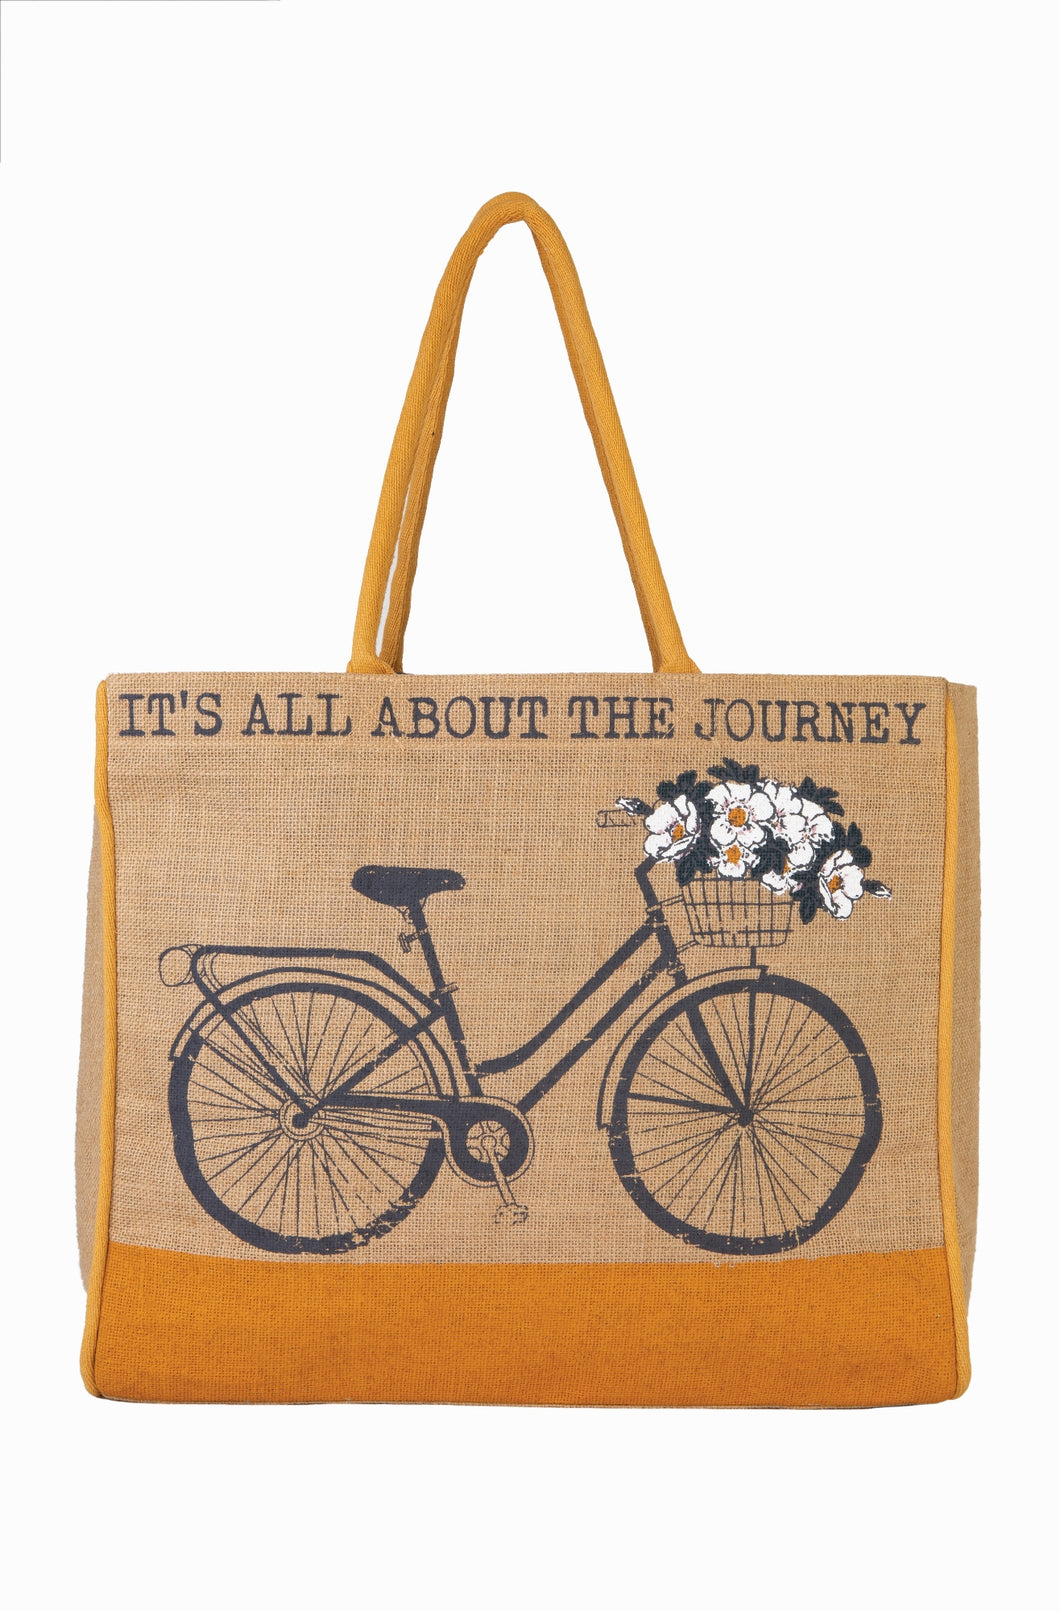 Trust The Journey Burlap Tote